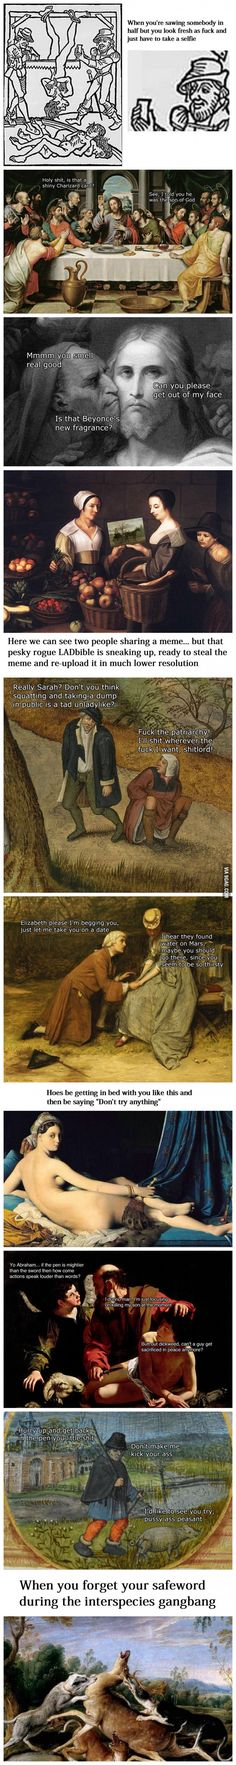 Classical Art Memes Latest (Part-3)